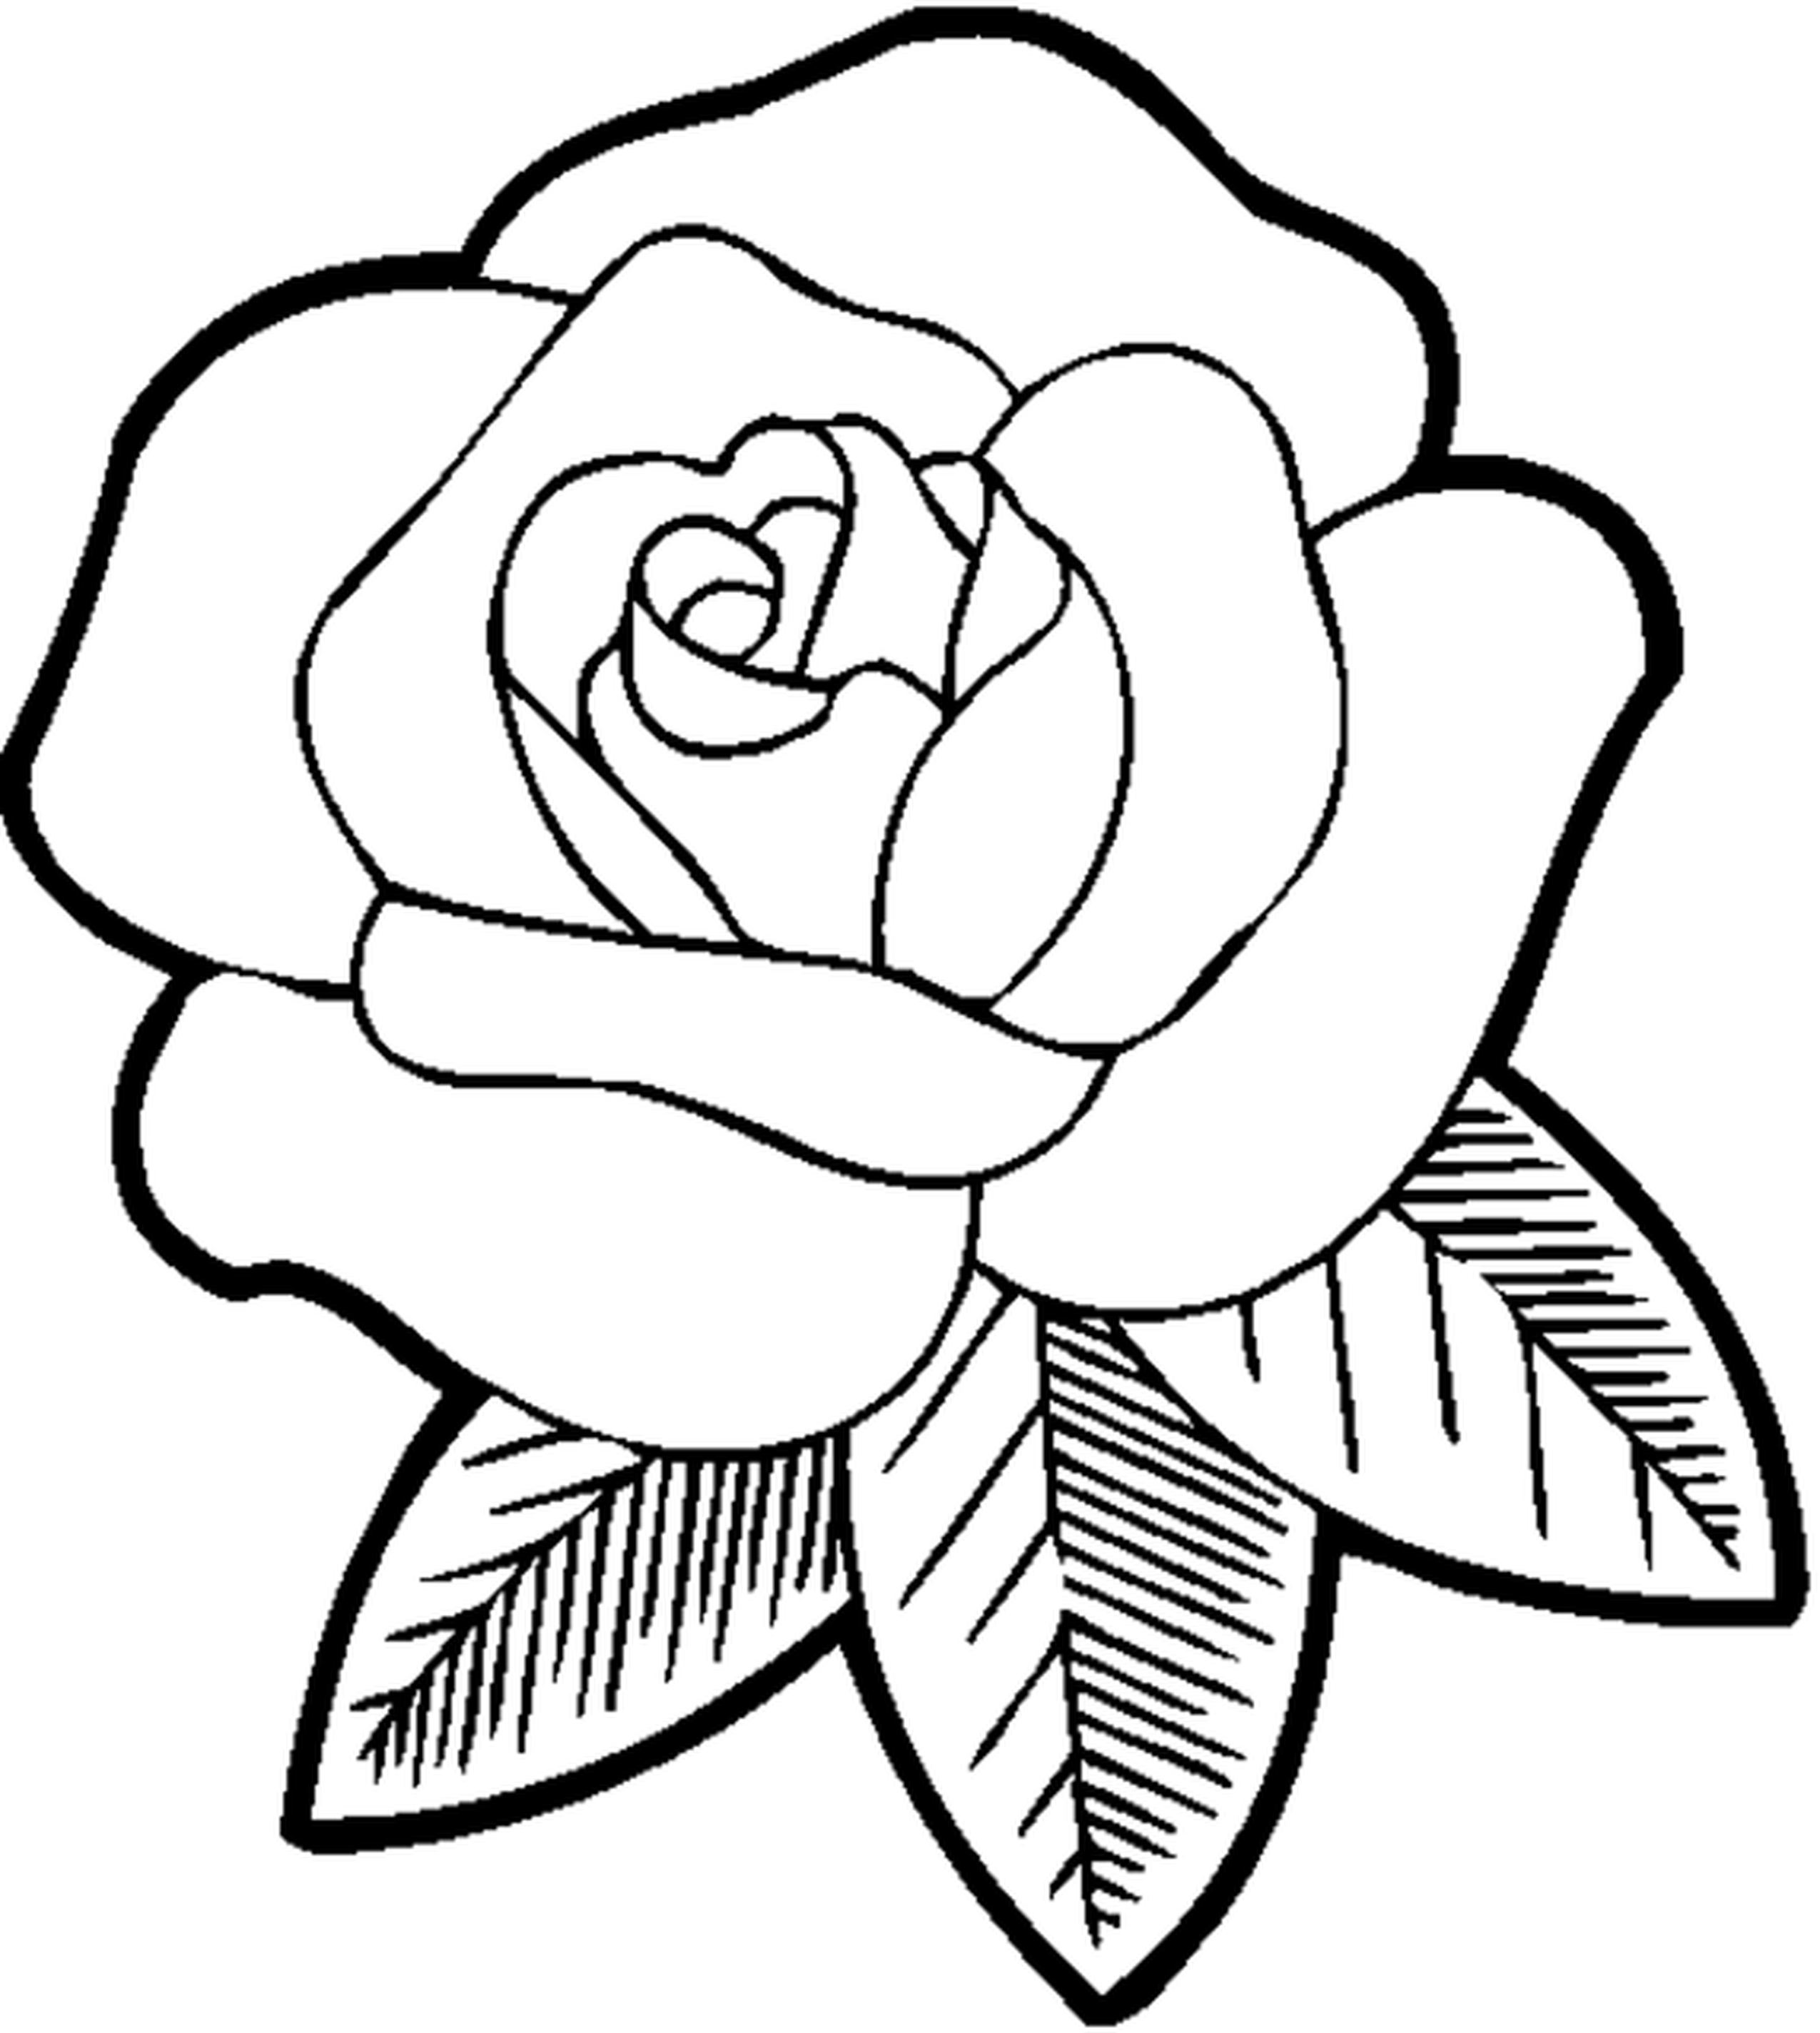 Flower Drawing Pages at GetDrawings.com | Free for personal use ...